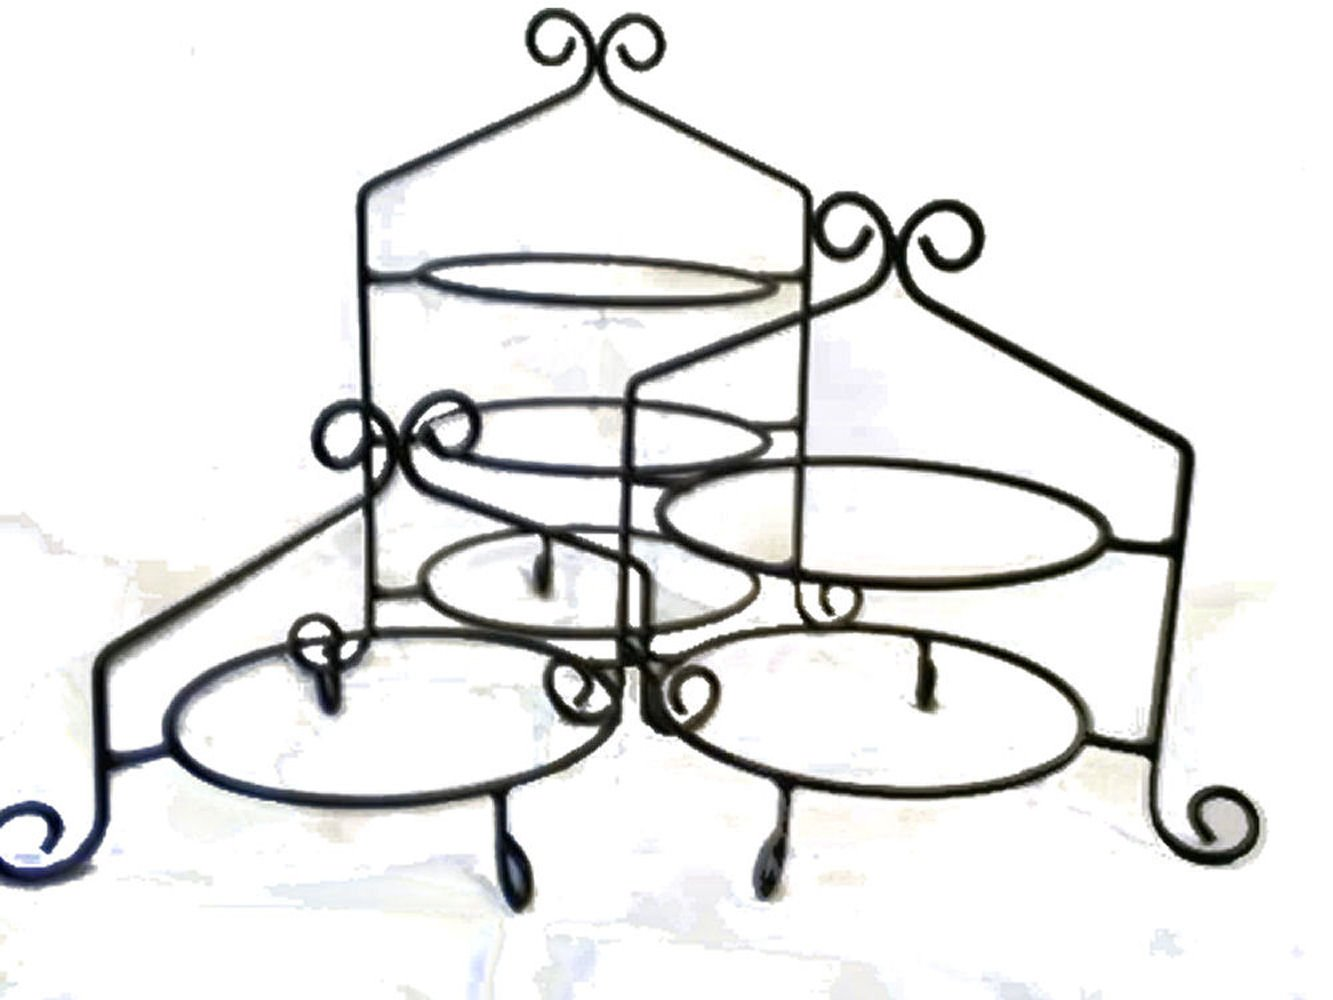 3 Pc Set - Hand Wrought Black Iron Cupcake Pie Plate Holder Rack Stand USA Made by Hand Crafted & American Made!